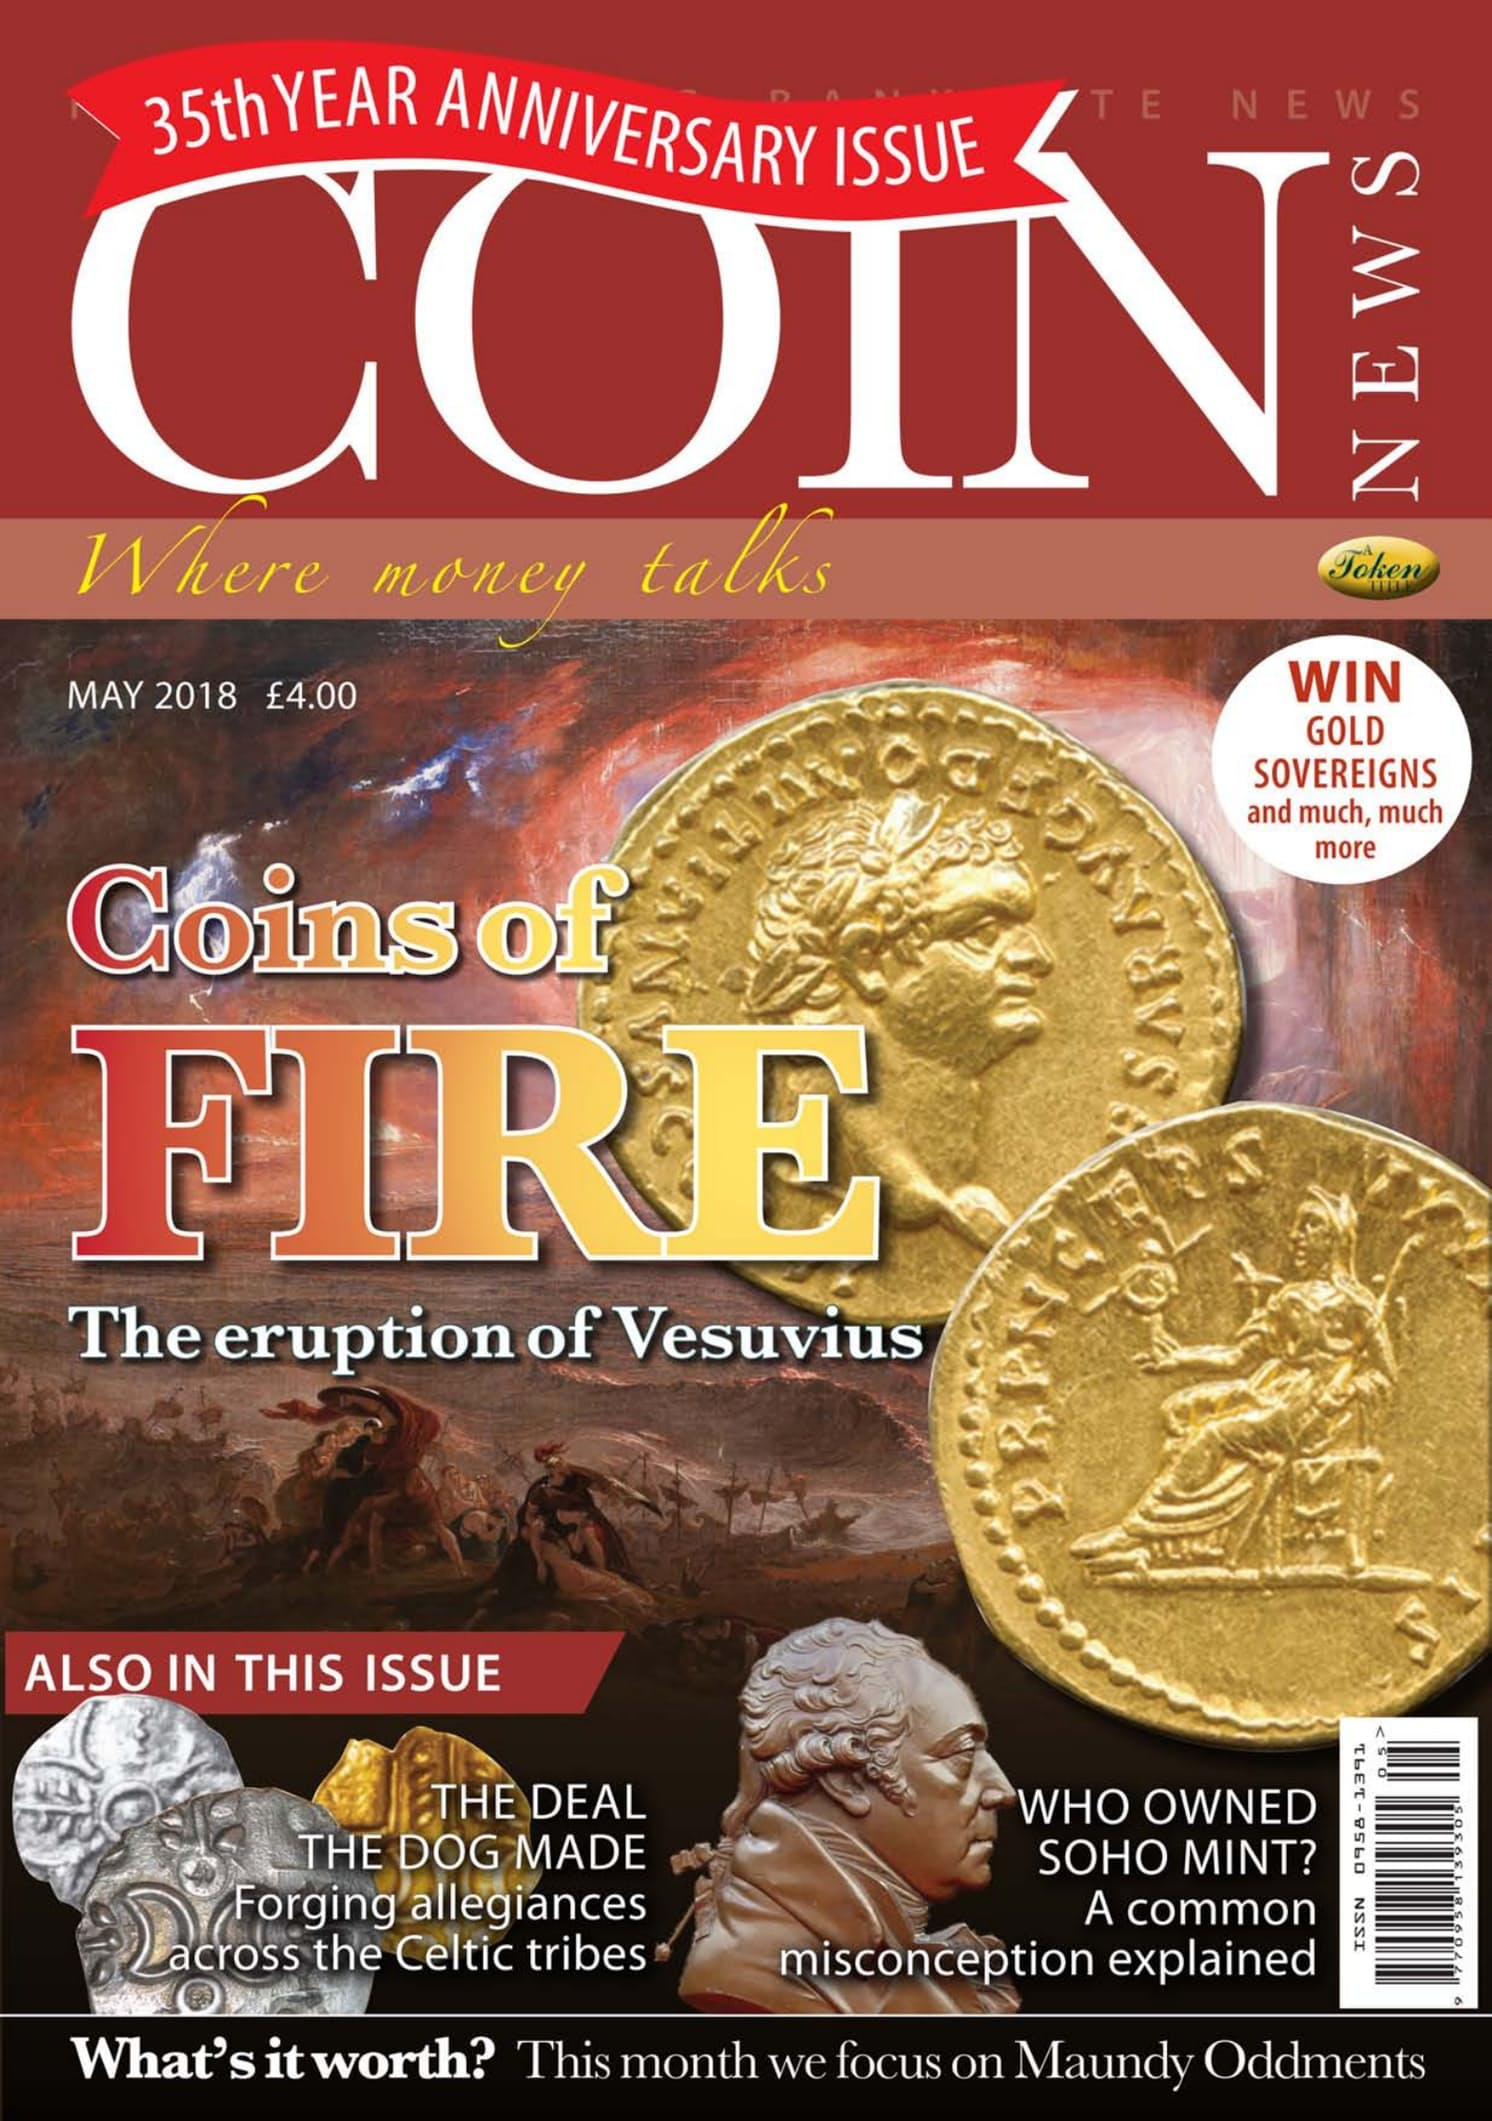 The front cover of Coin News, Volume 55, Number 5, May 2018